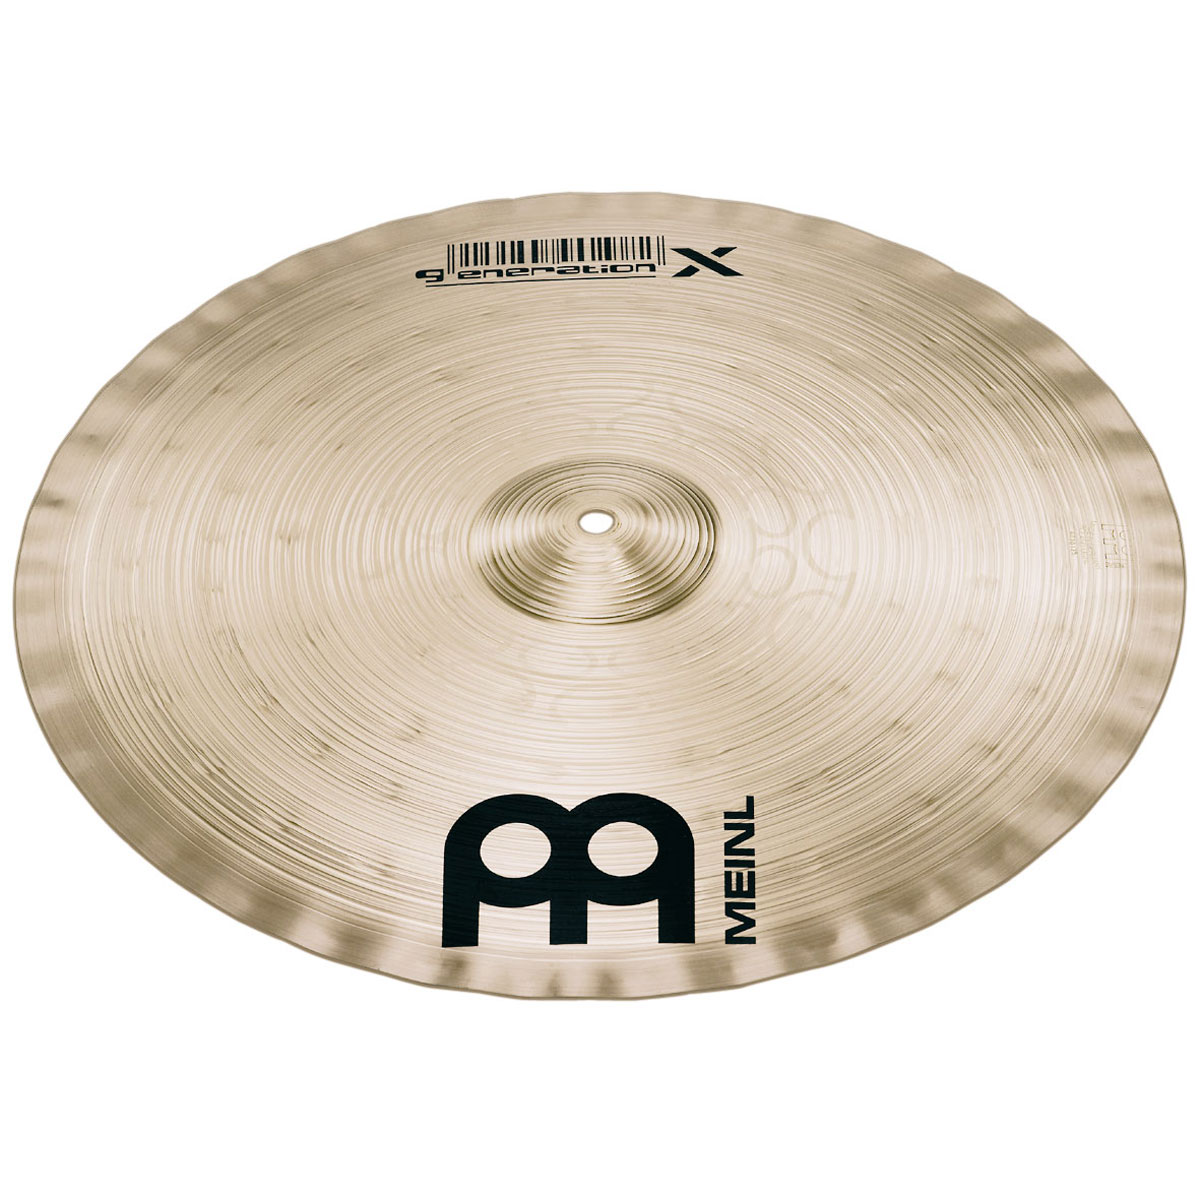 "Meinl 16"" Generation X Synthetik Crash Cymbal"